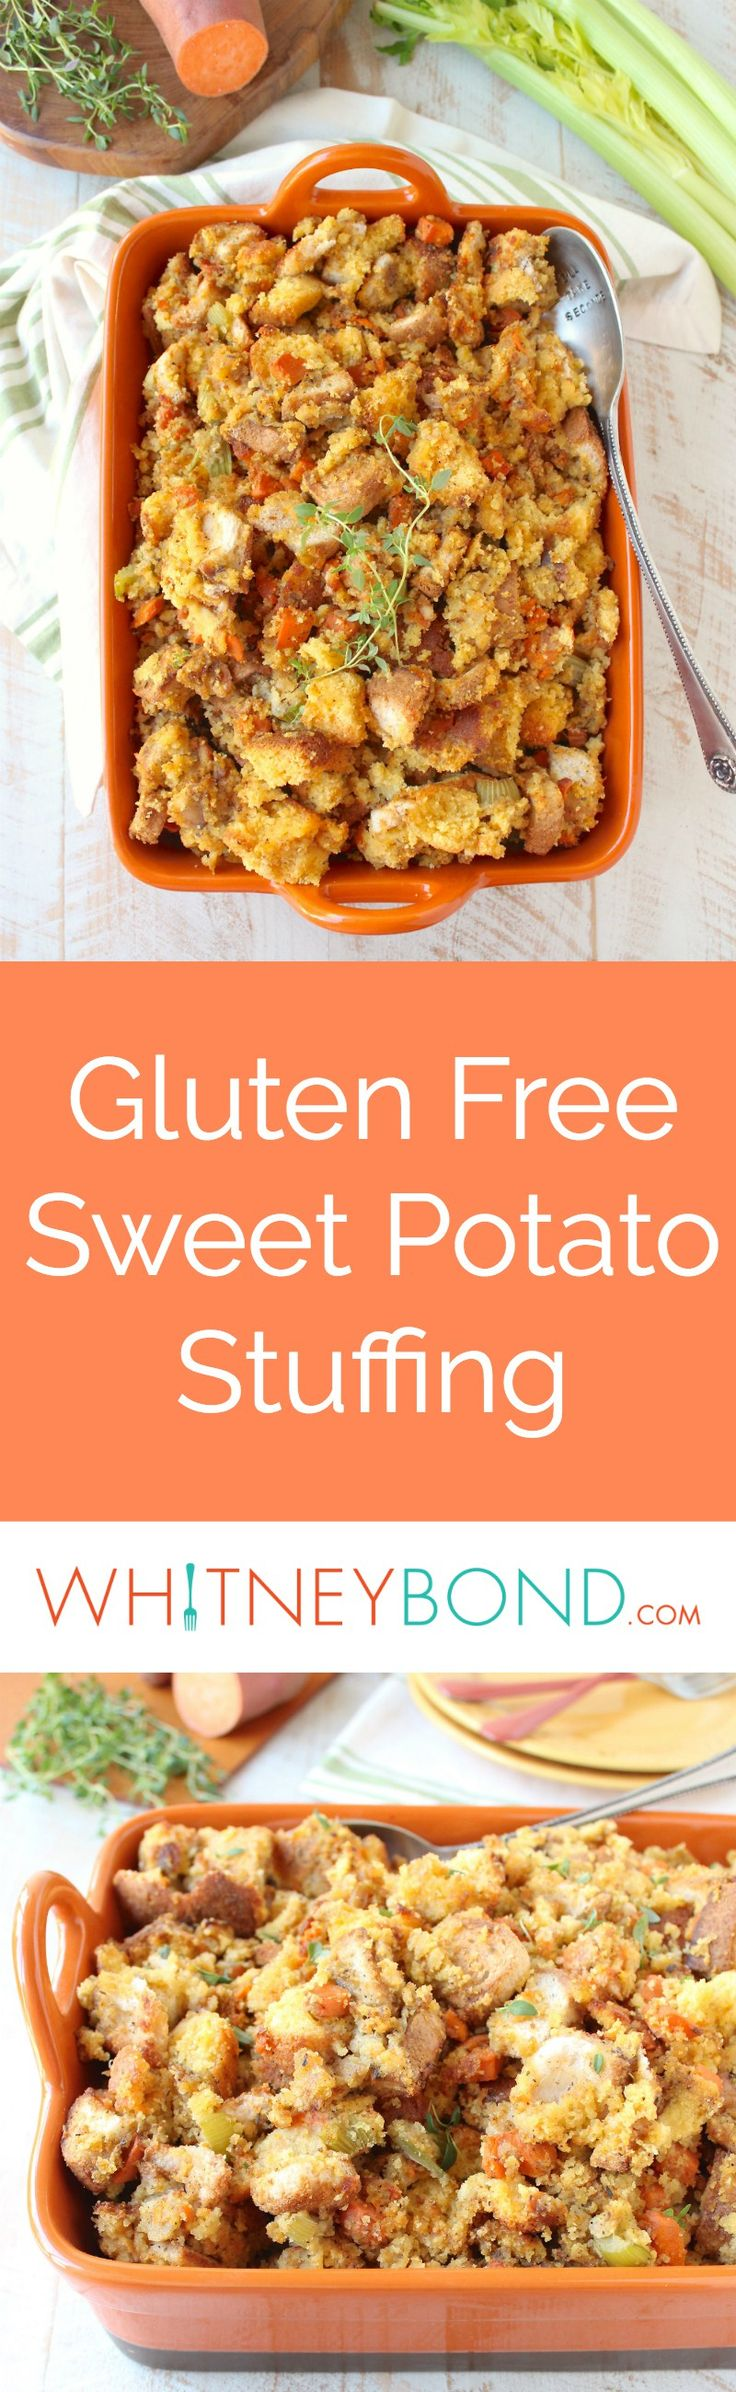 The most delicious and easy Gluten Free Stuffing Recipe made with gluten free cornbread, white bread and sweet potatoes! #GlutenFree #GlutenFreeStuffing #Thanksgiving #Vegetarian